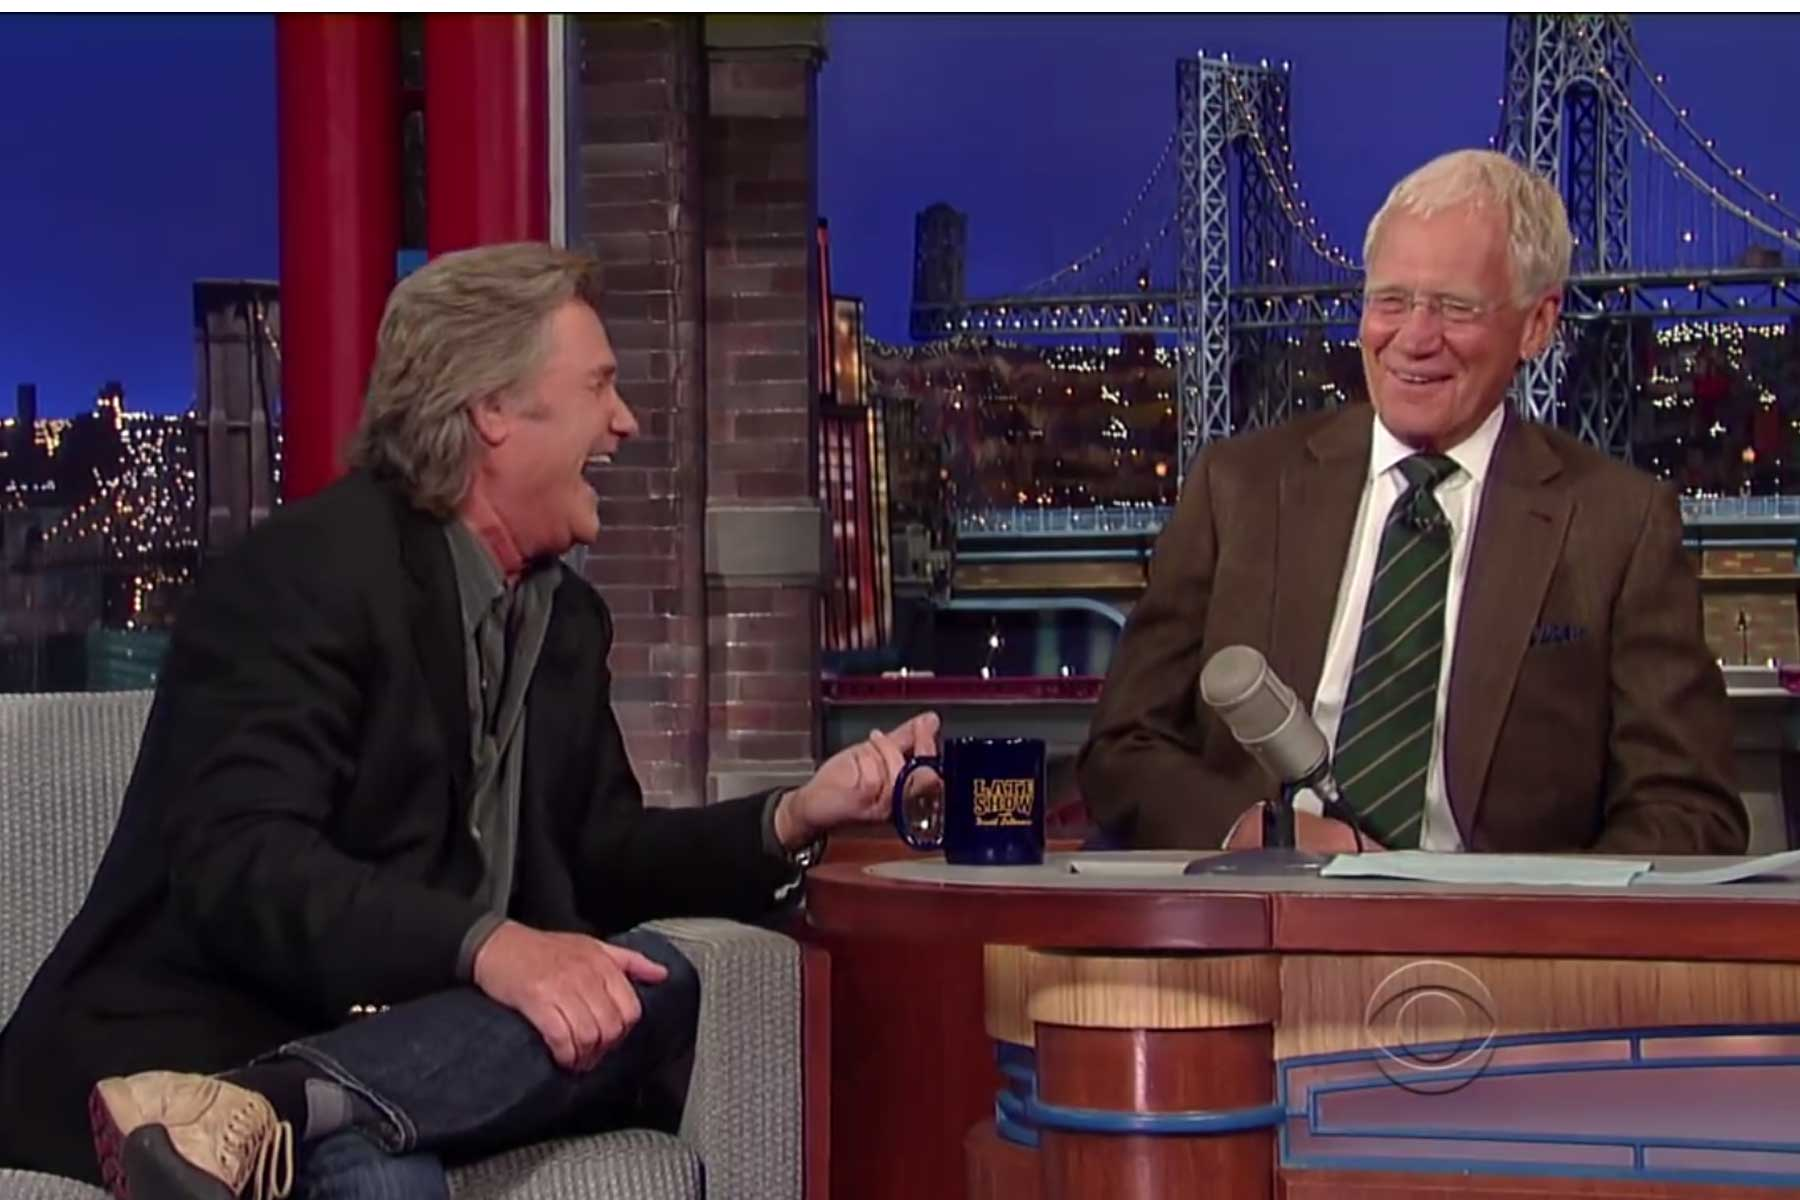 Kurt Russell on Letterman